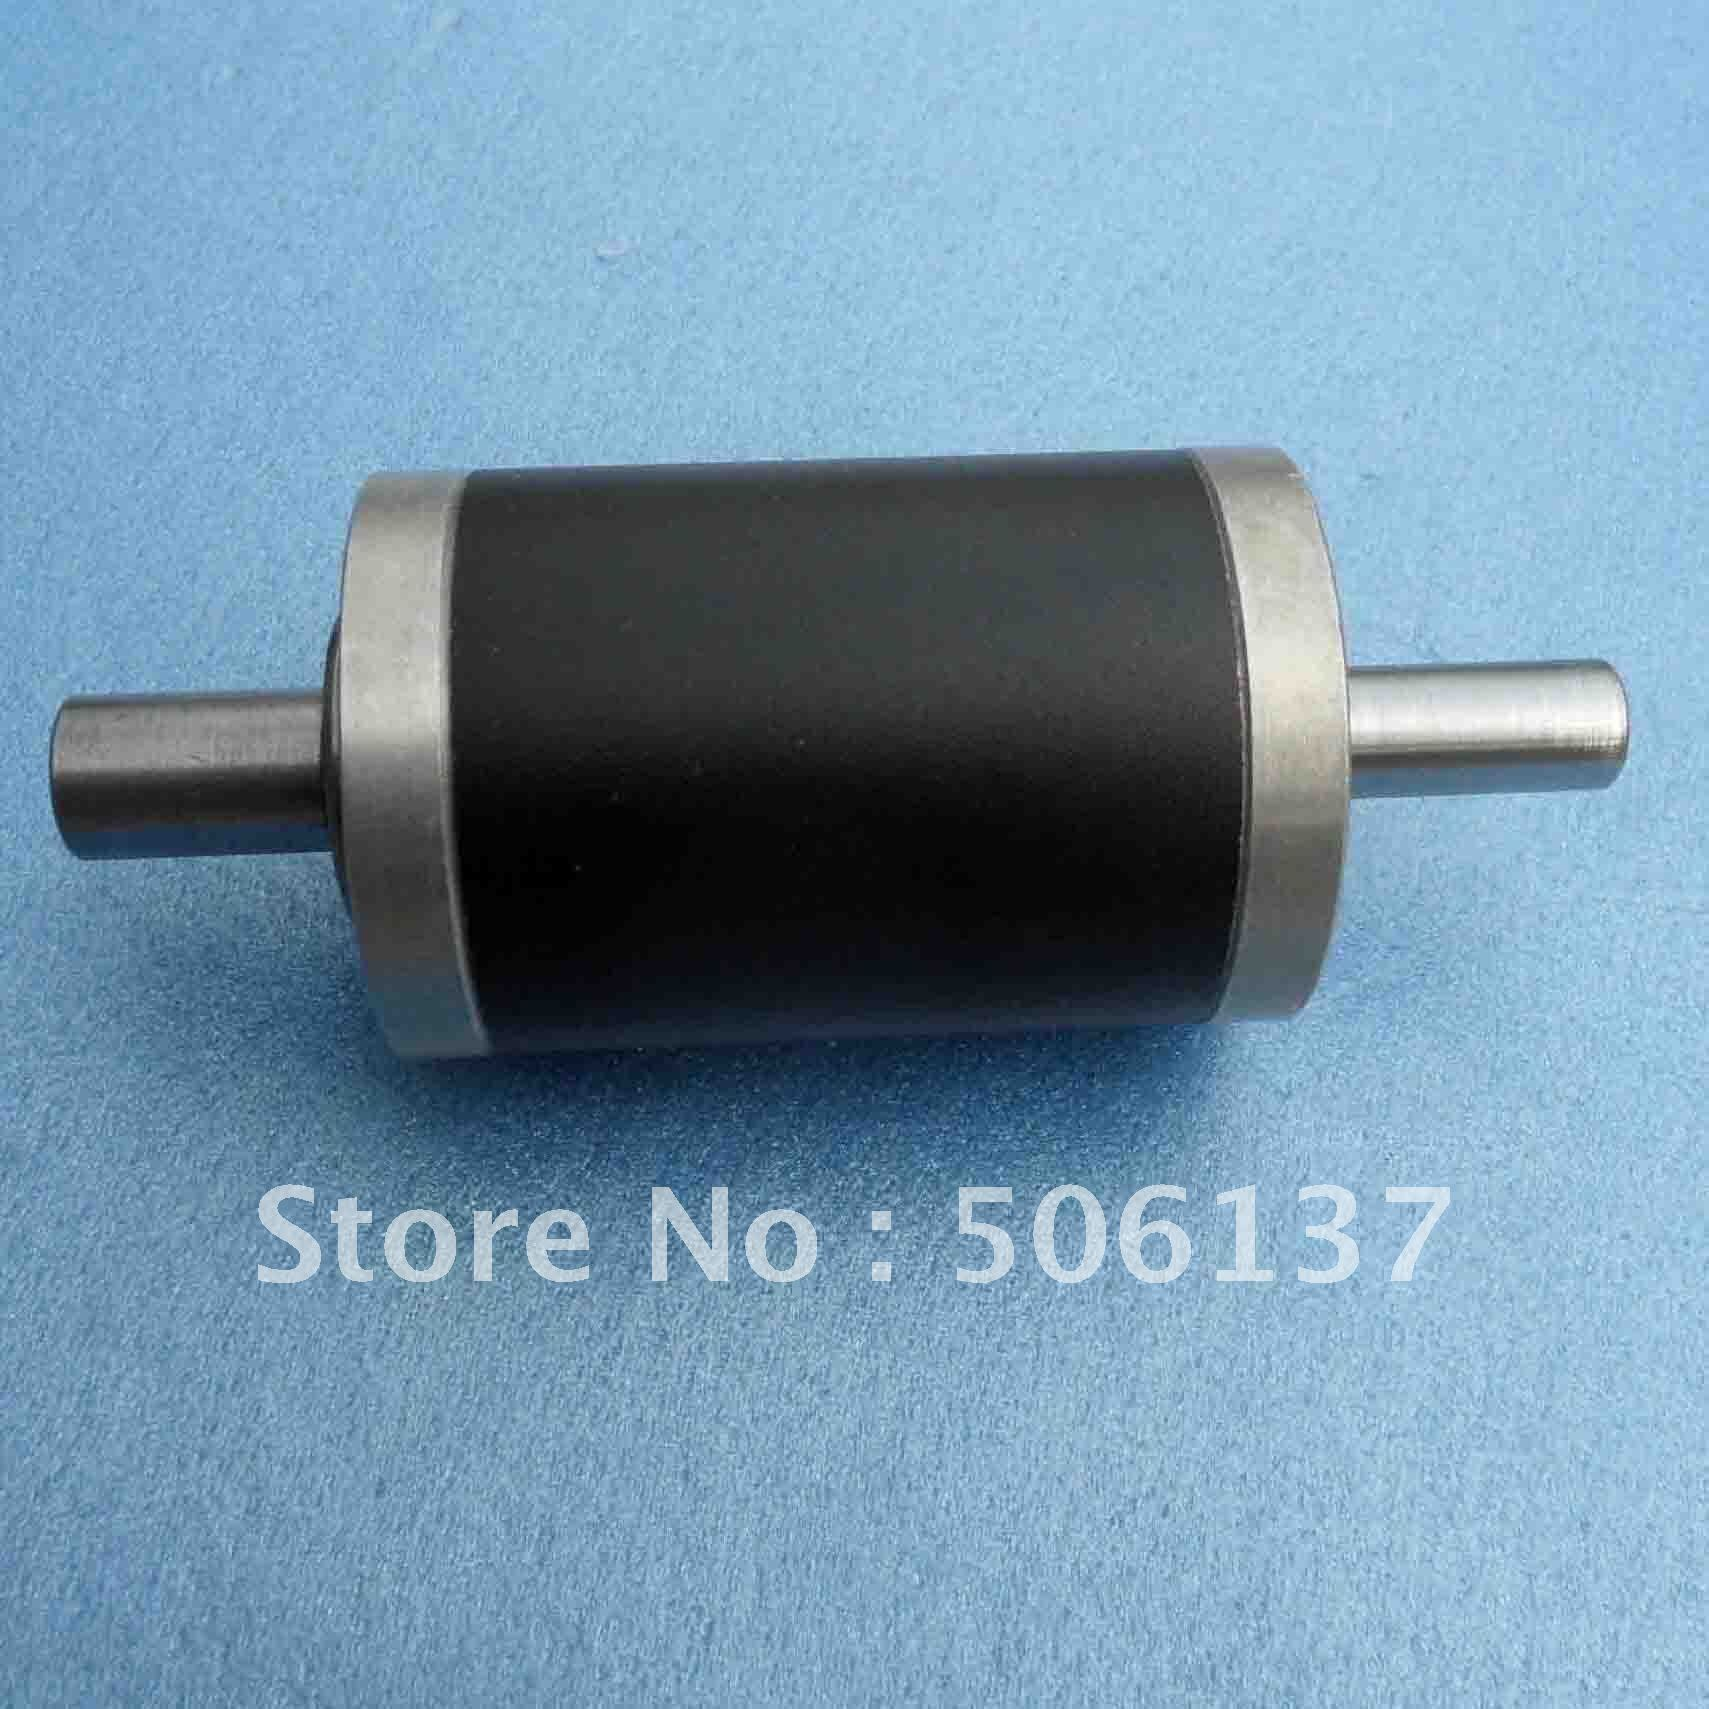 42mm Micro Planetary Speed Reducer GP42-SC planetary gear in integer ratios double shaft reducer eouble shaft planetary gearbox 42mm micro planetary speed reducer gp42 0 planetary gearbox